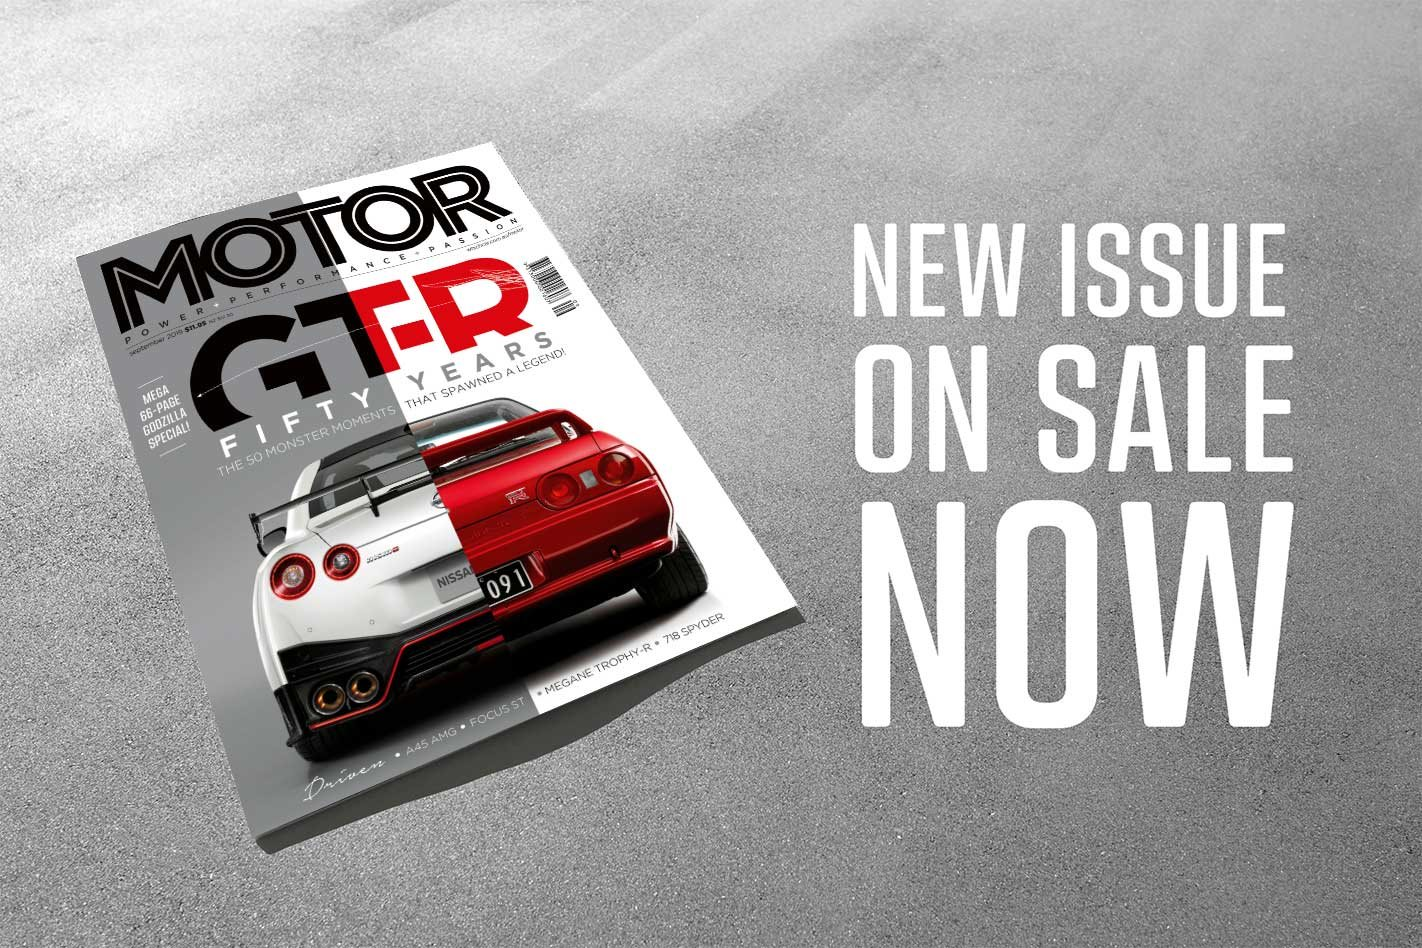 MOTOR Magazine celebrates 50 Years of the Nissan GT-R in its September 2019 issue